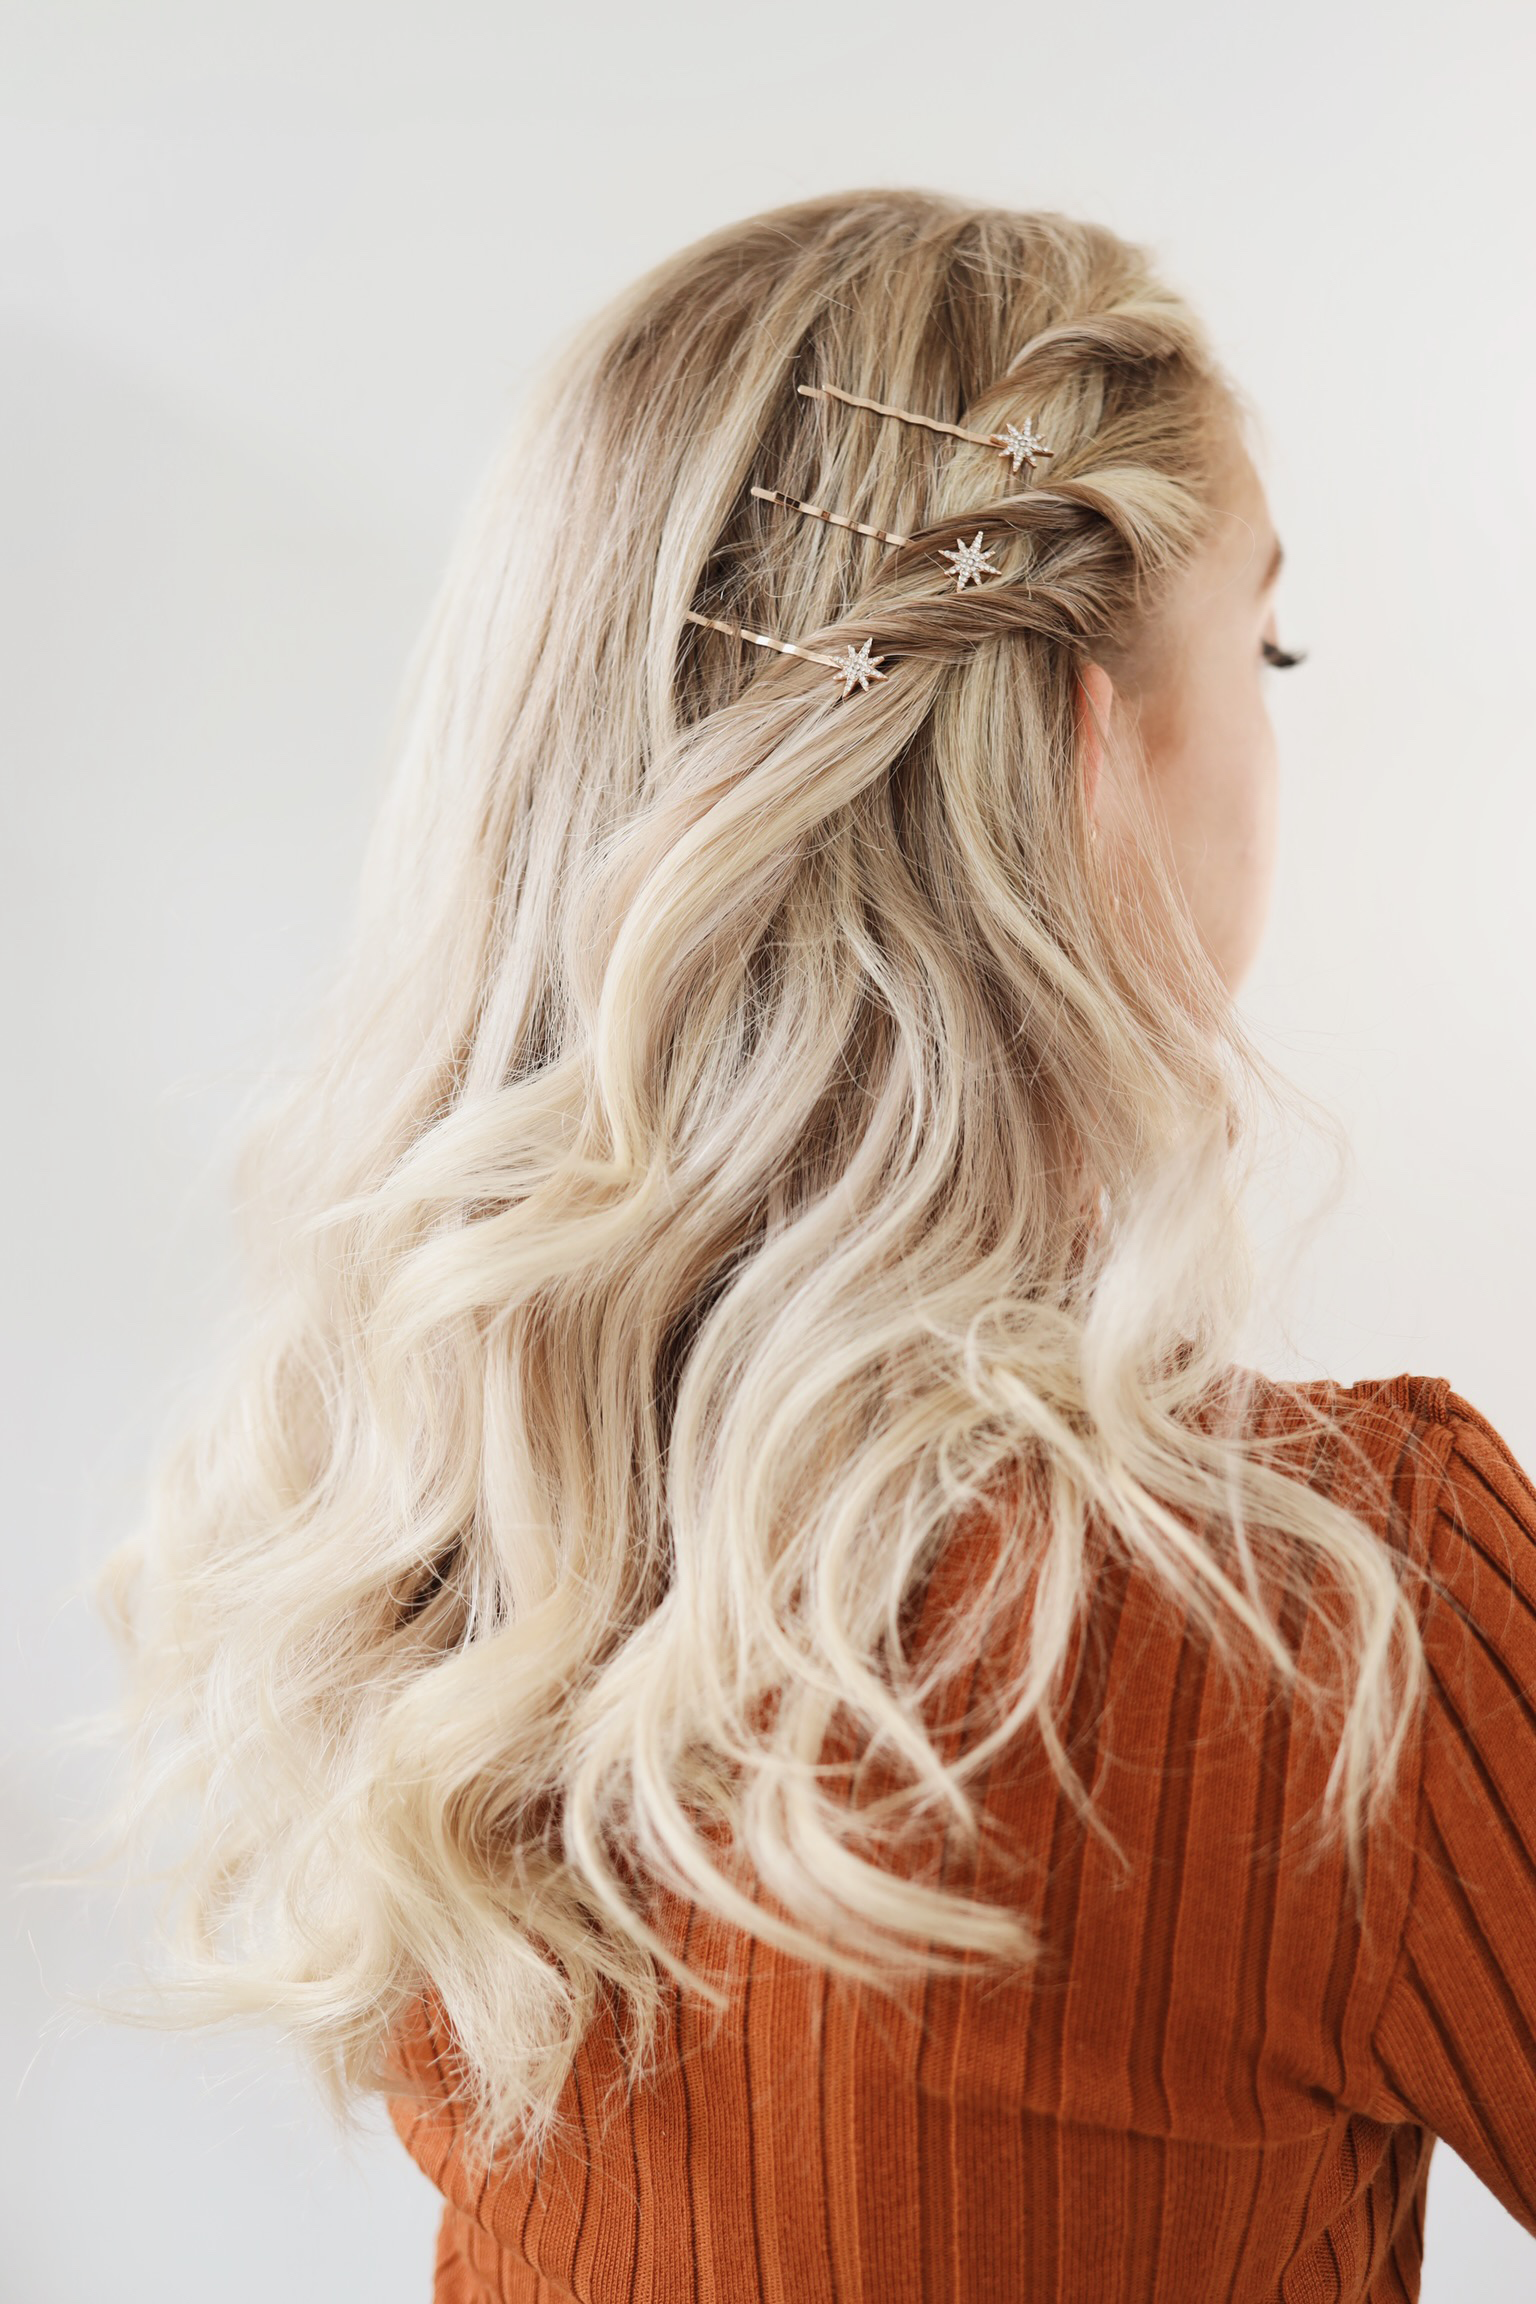 Hair Accessories - Where To Buy & How To Style Them